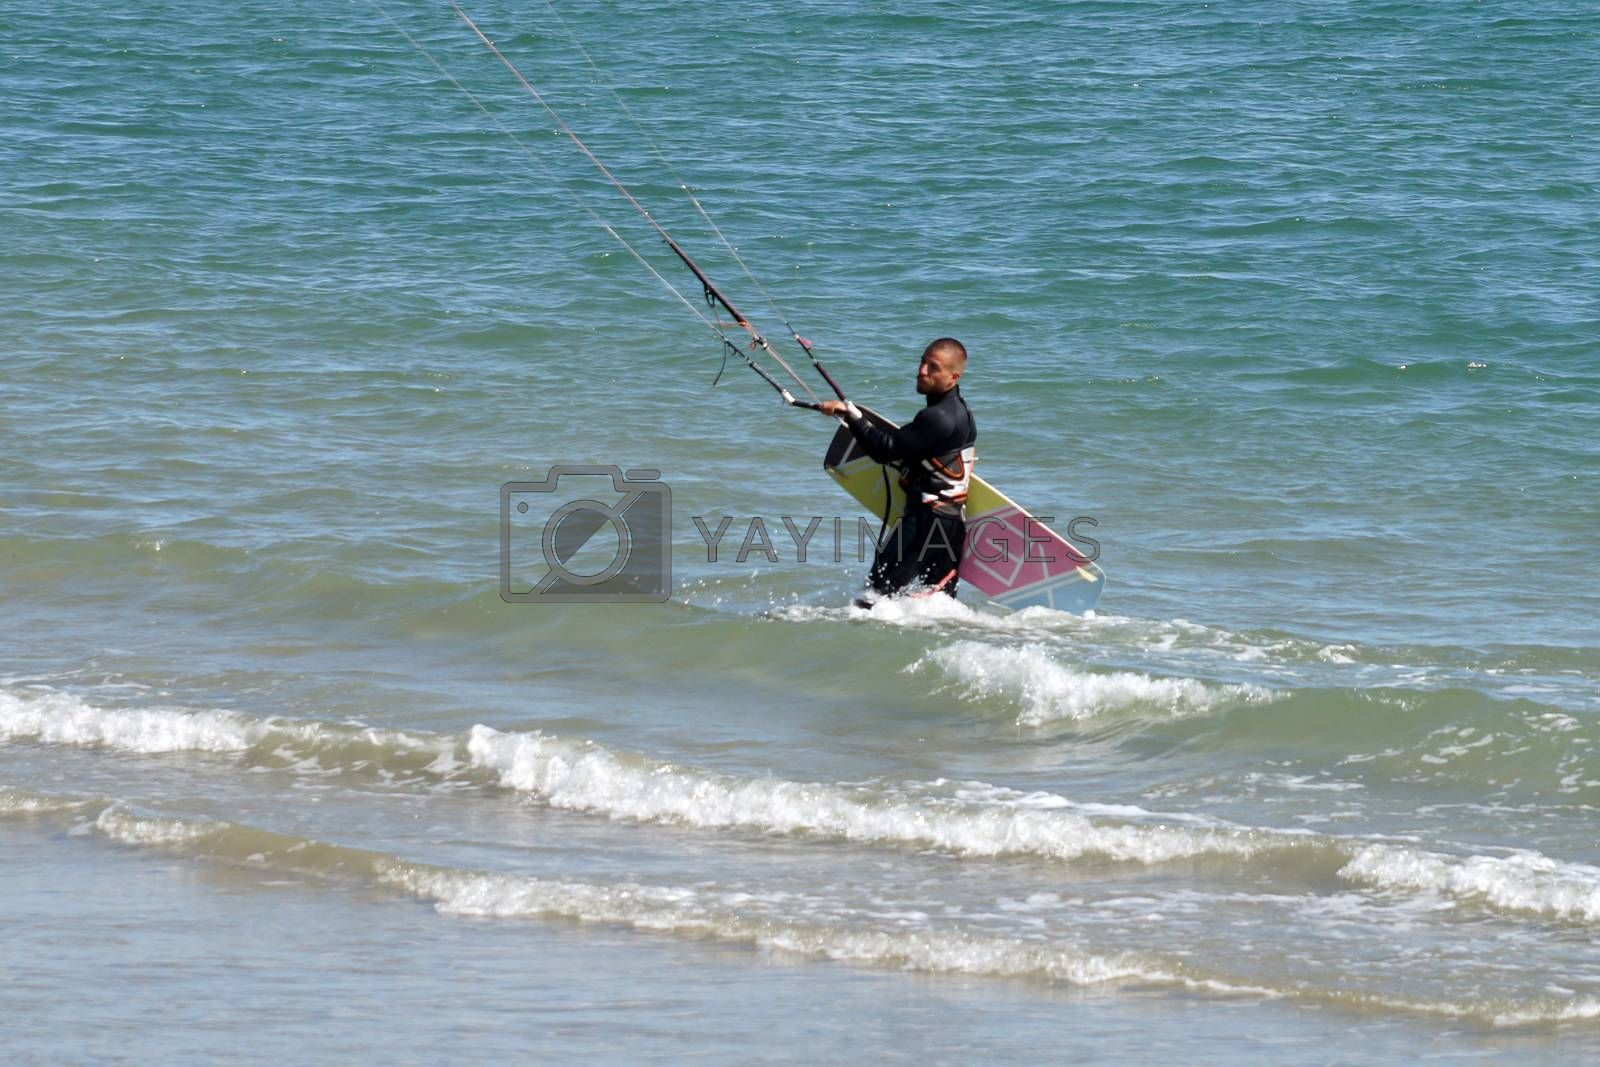 Varna, Bulgaria - September, 19, 2020: a man comes out of the sea with a kiteboard